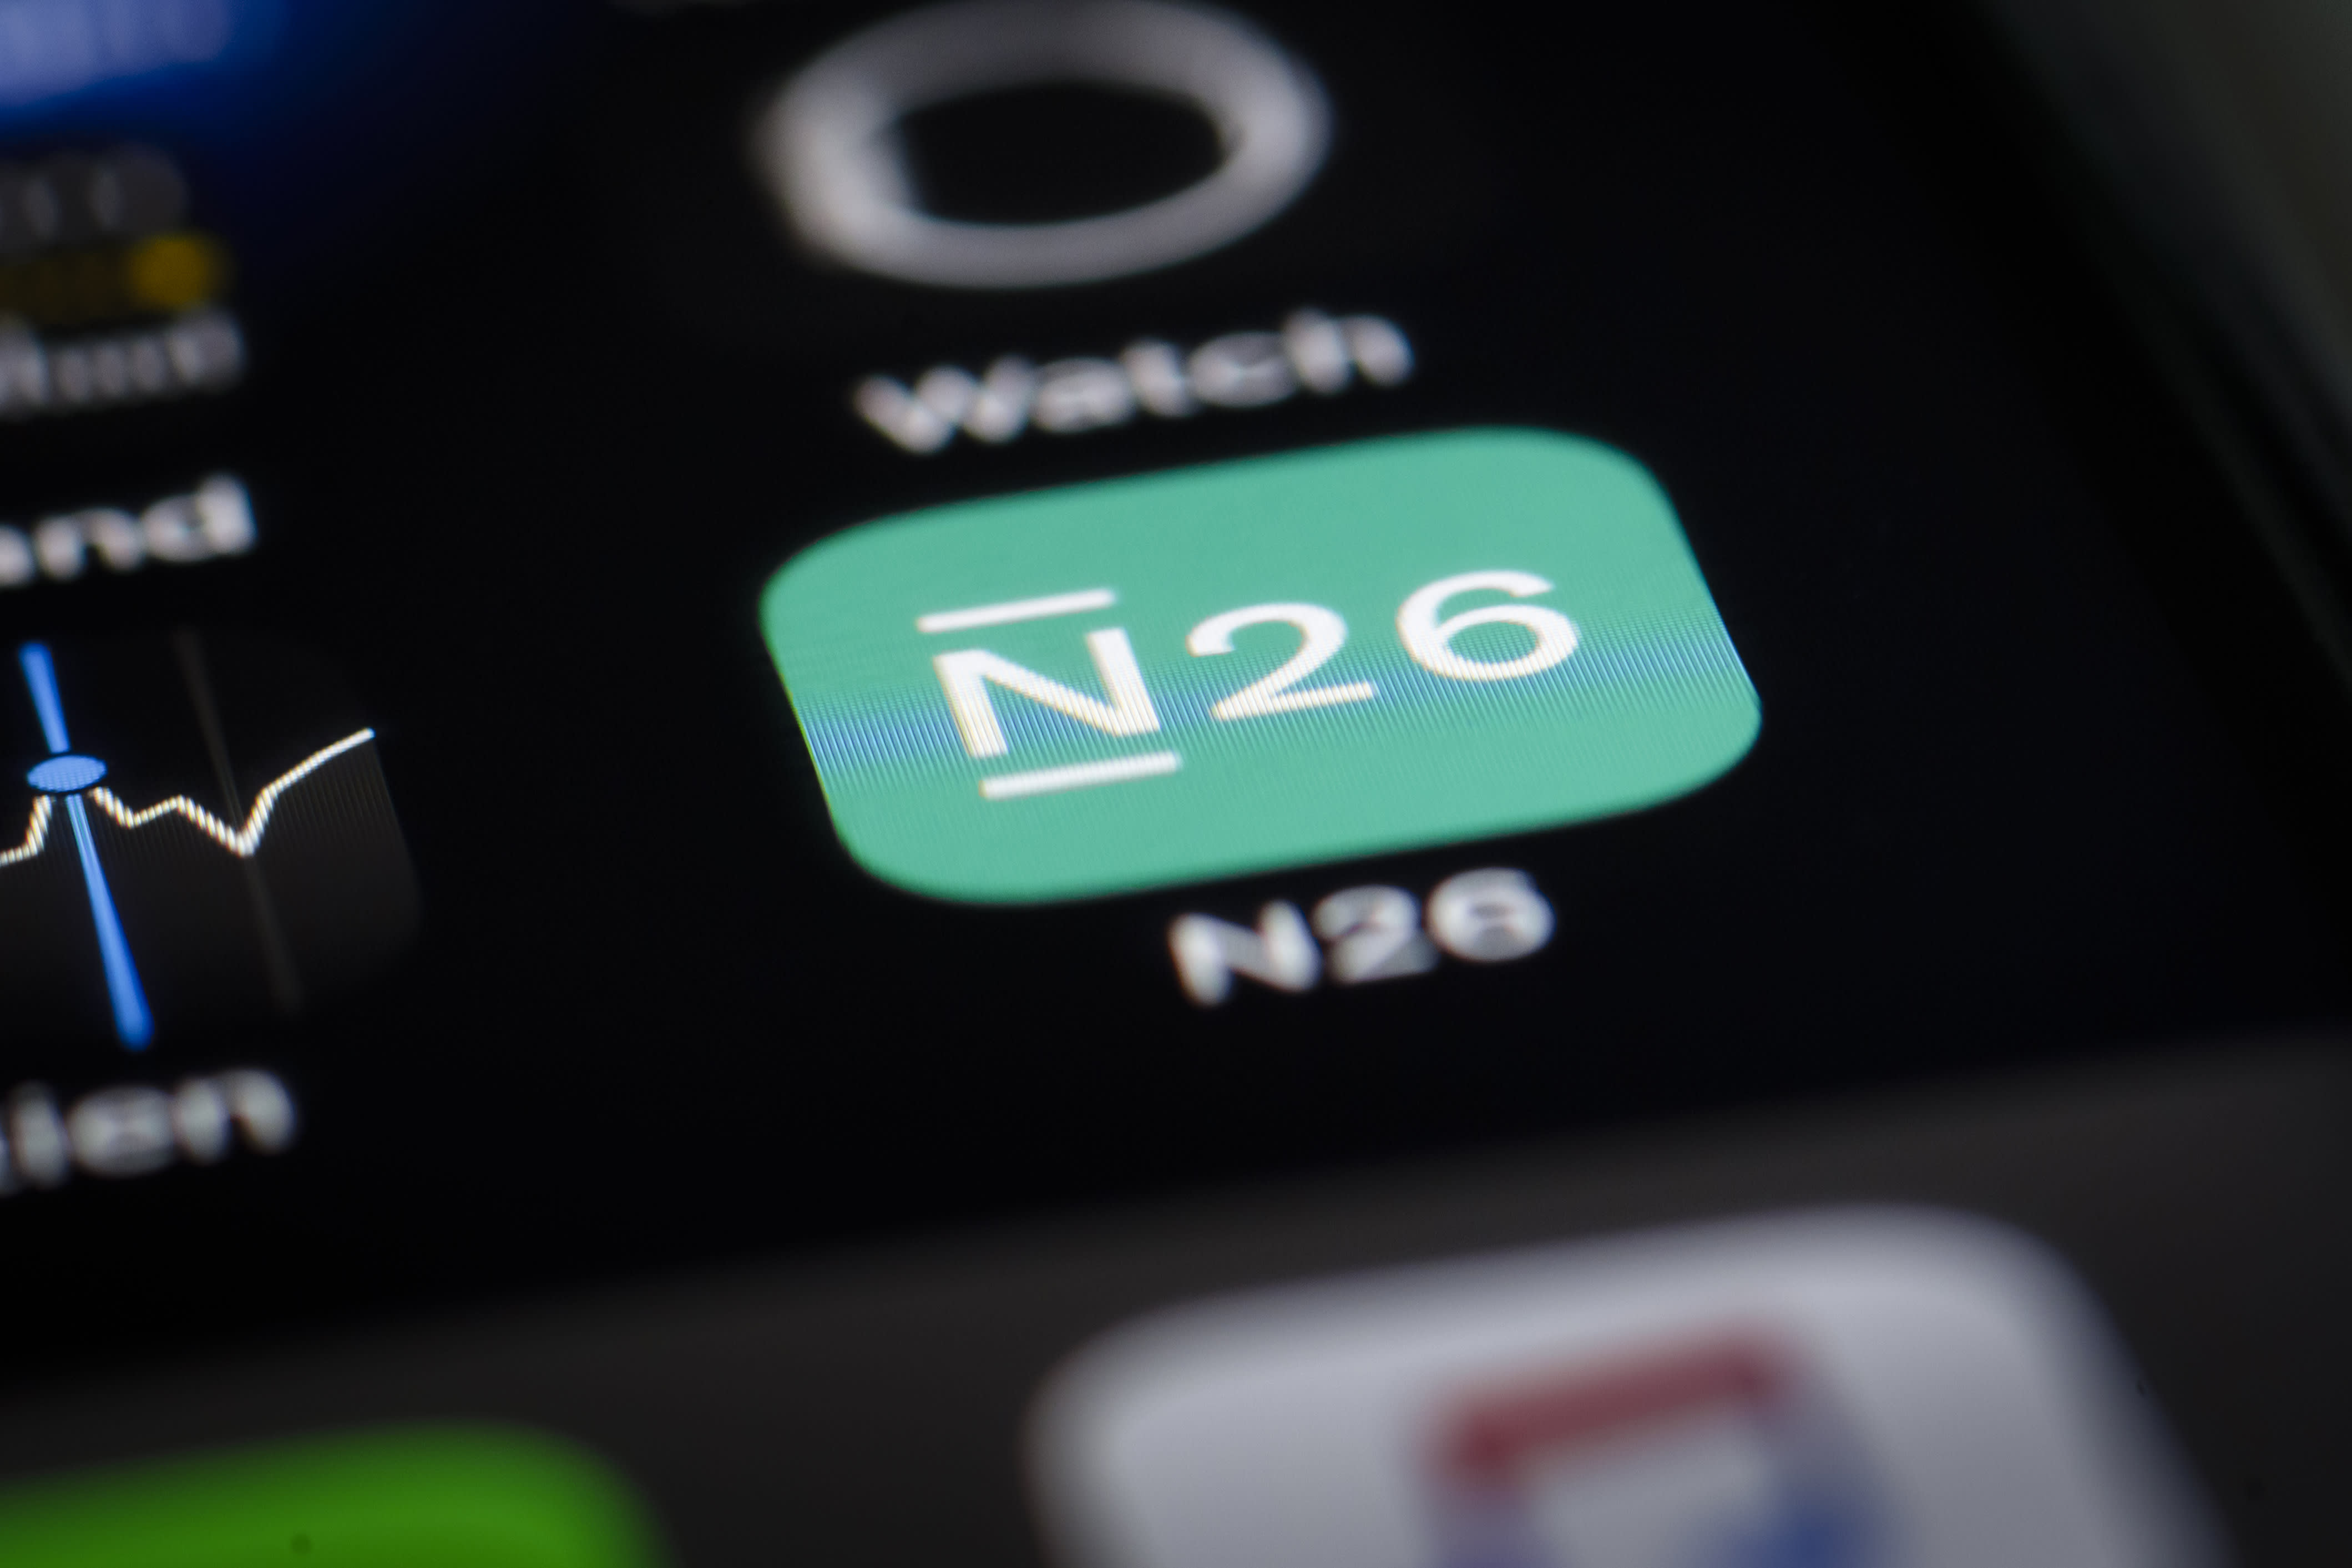 German mobile bank N26 is thinking of making its first acquisition